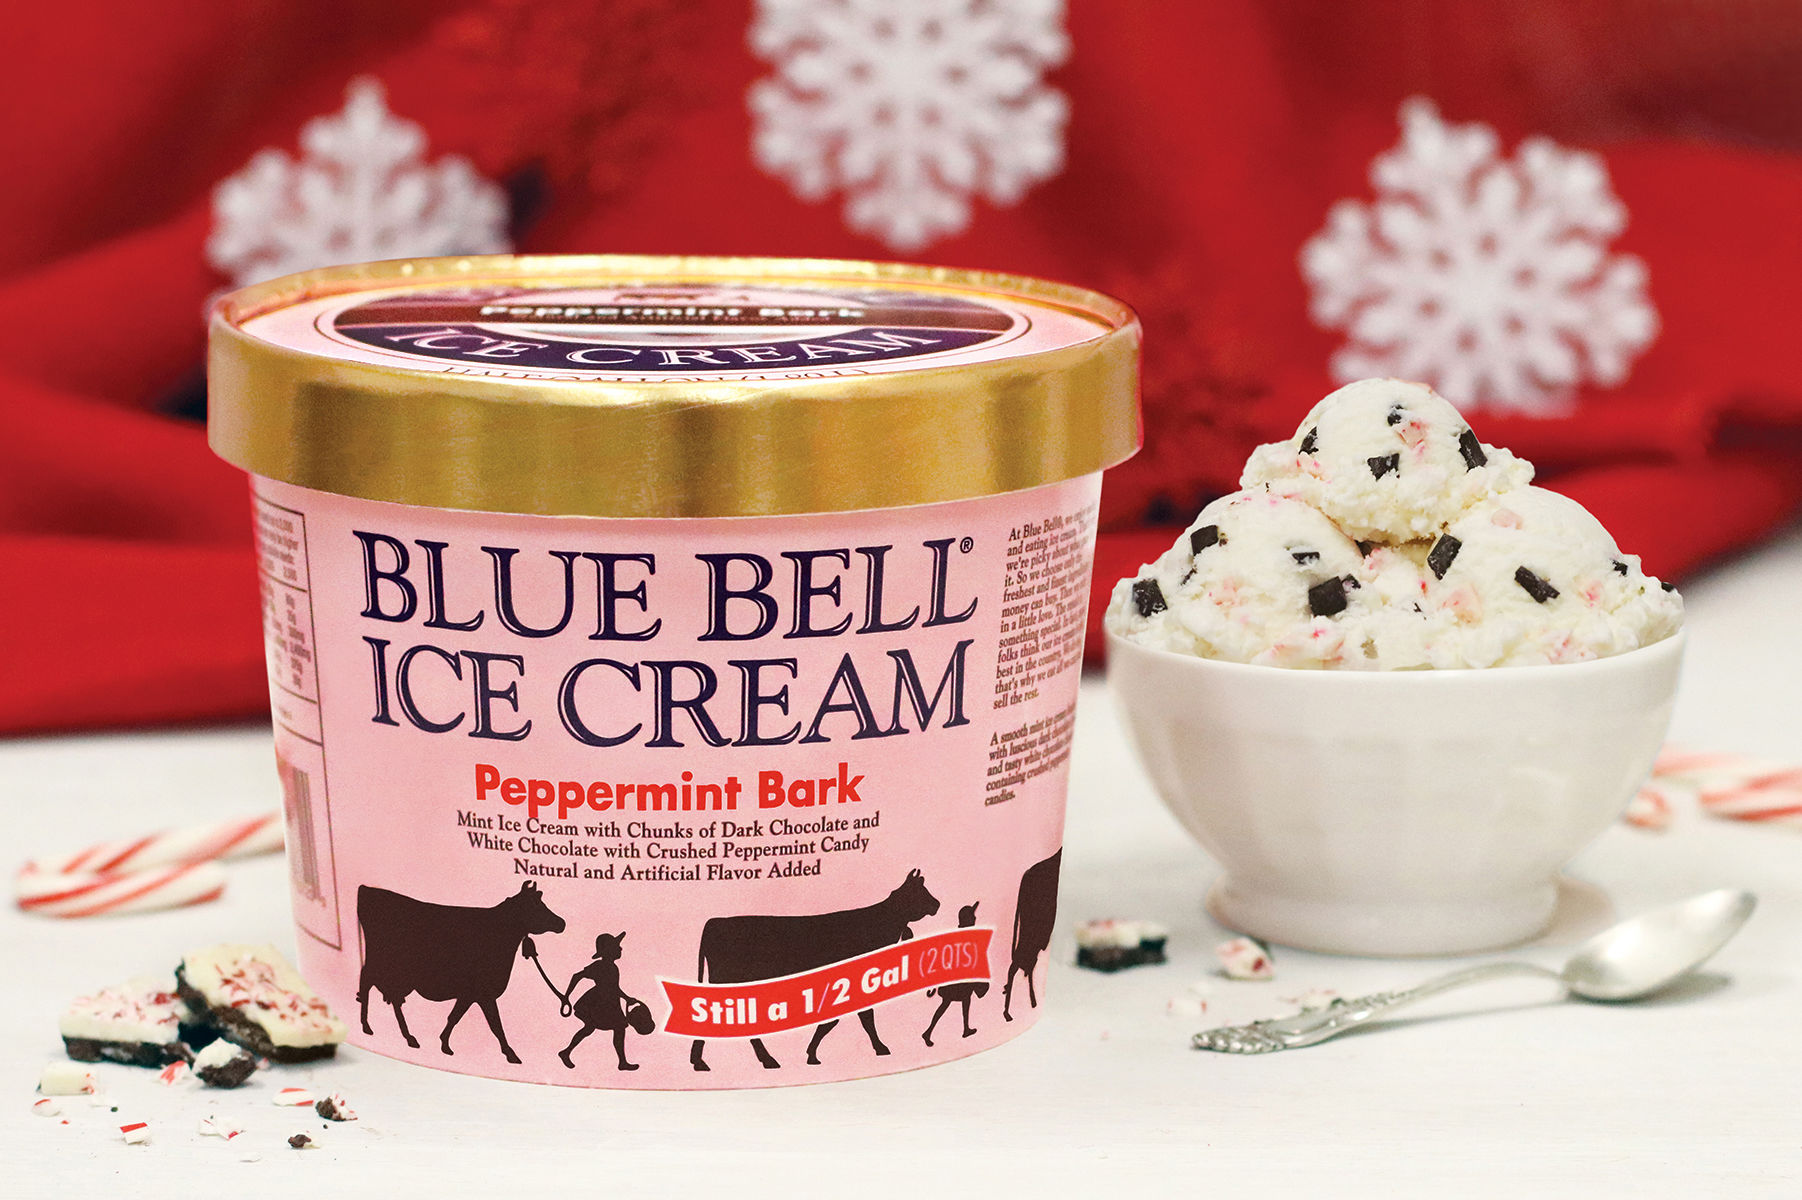 Blue Bell Peppermint Bark Ice Cream